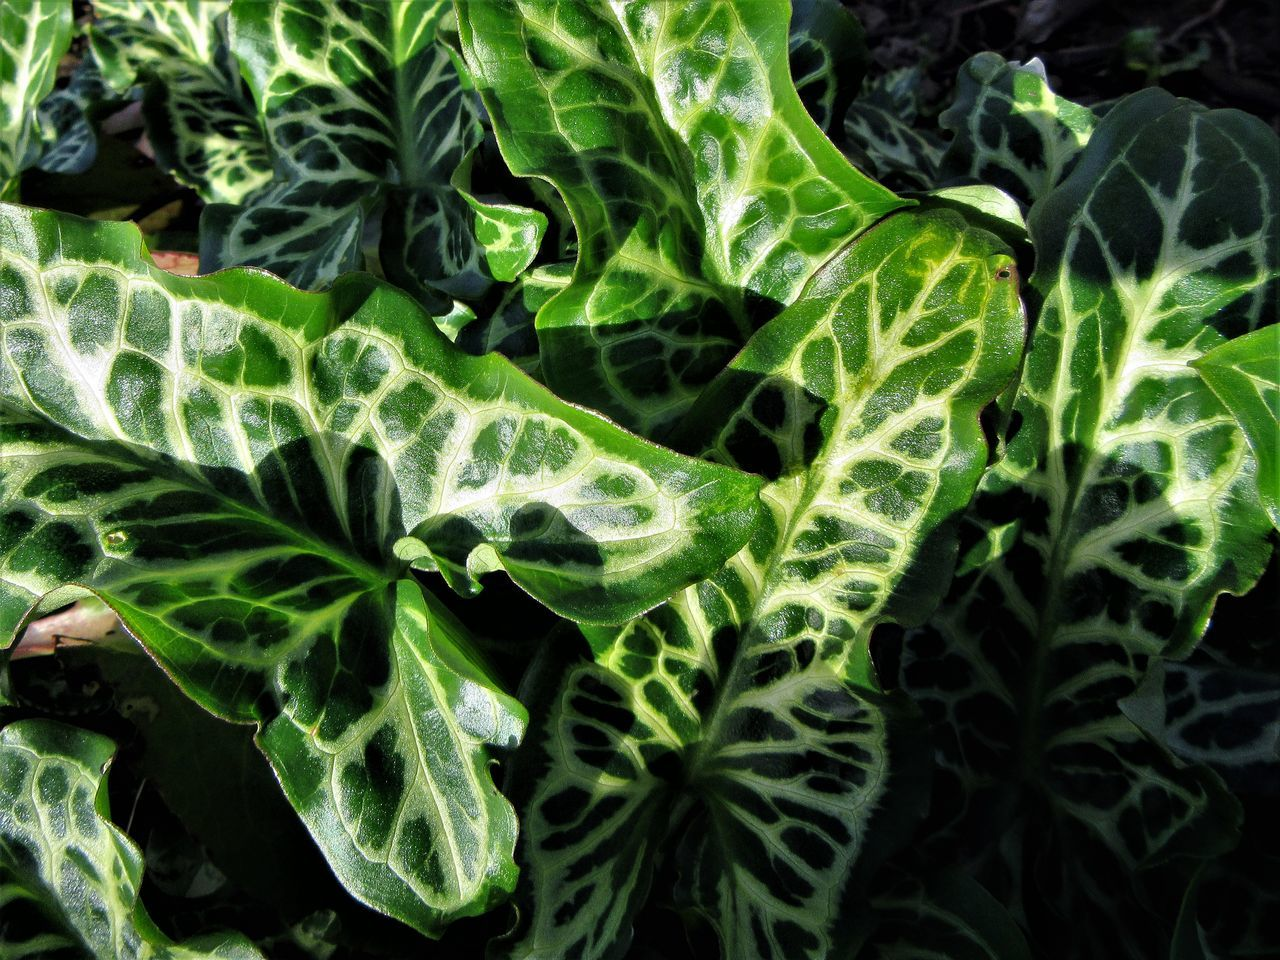 Arum italicum pictum leaves Arum Arum Italicum Pictum Backgrounds Close-up Freshness Full Frame Green Color Growth Leaf Nature Outdoors Plant Variegated Variegated Leaves